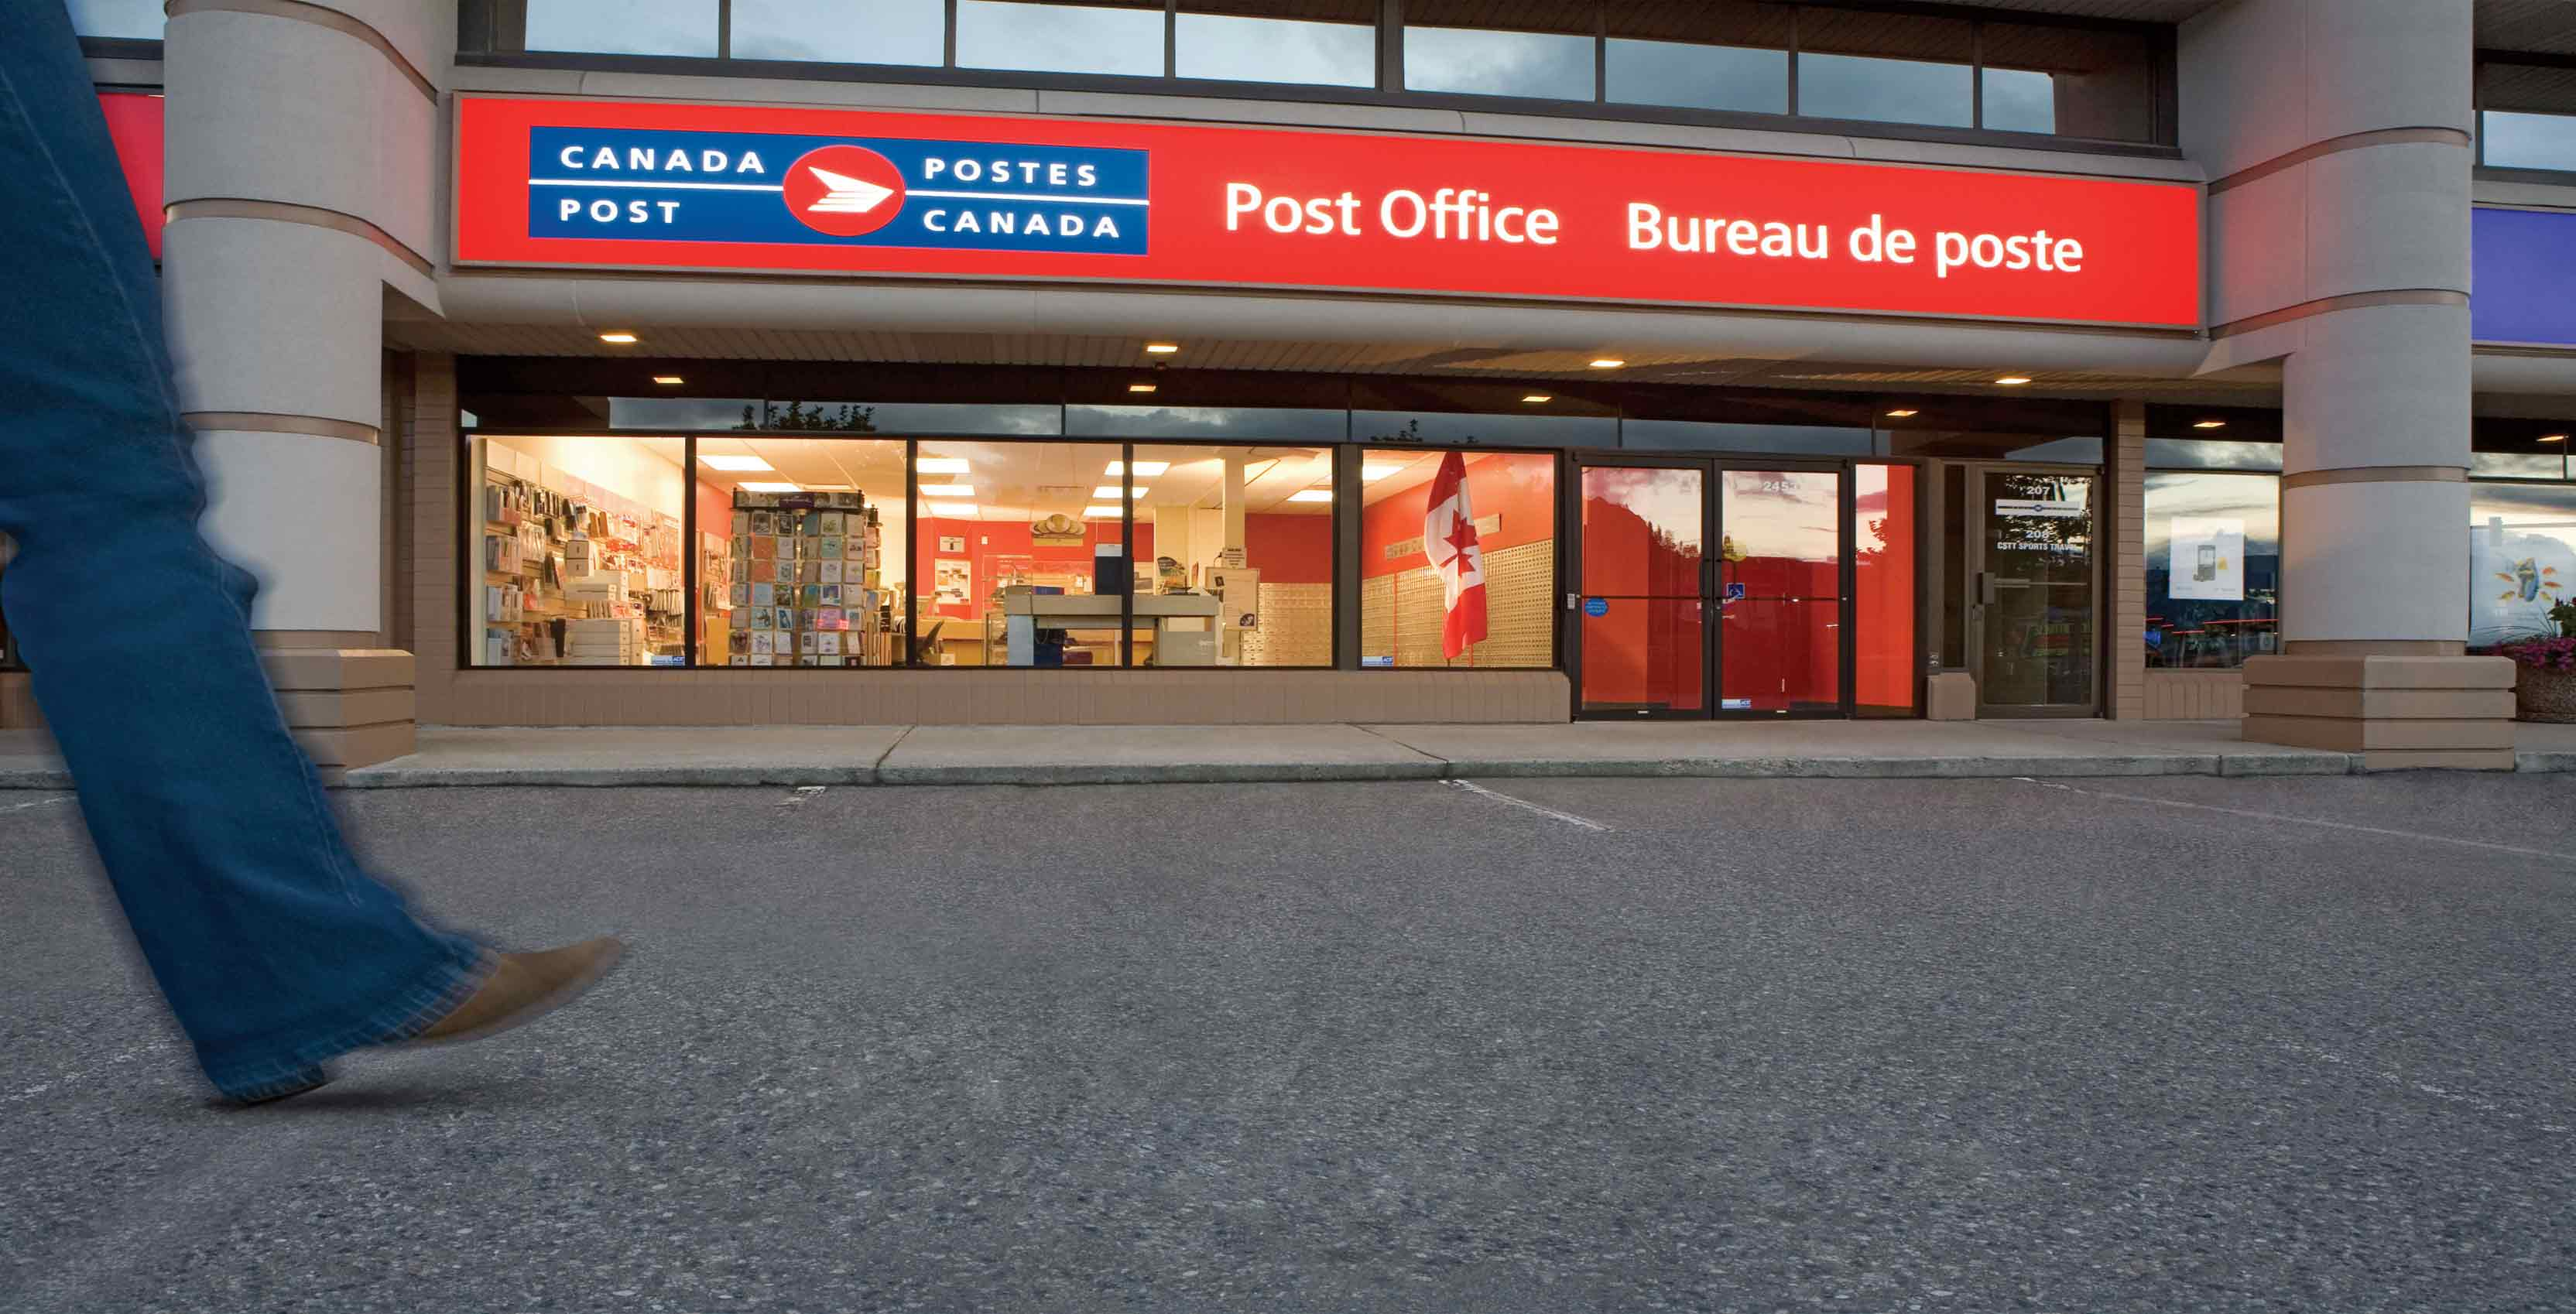 Image showing a Canada Post office